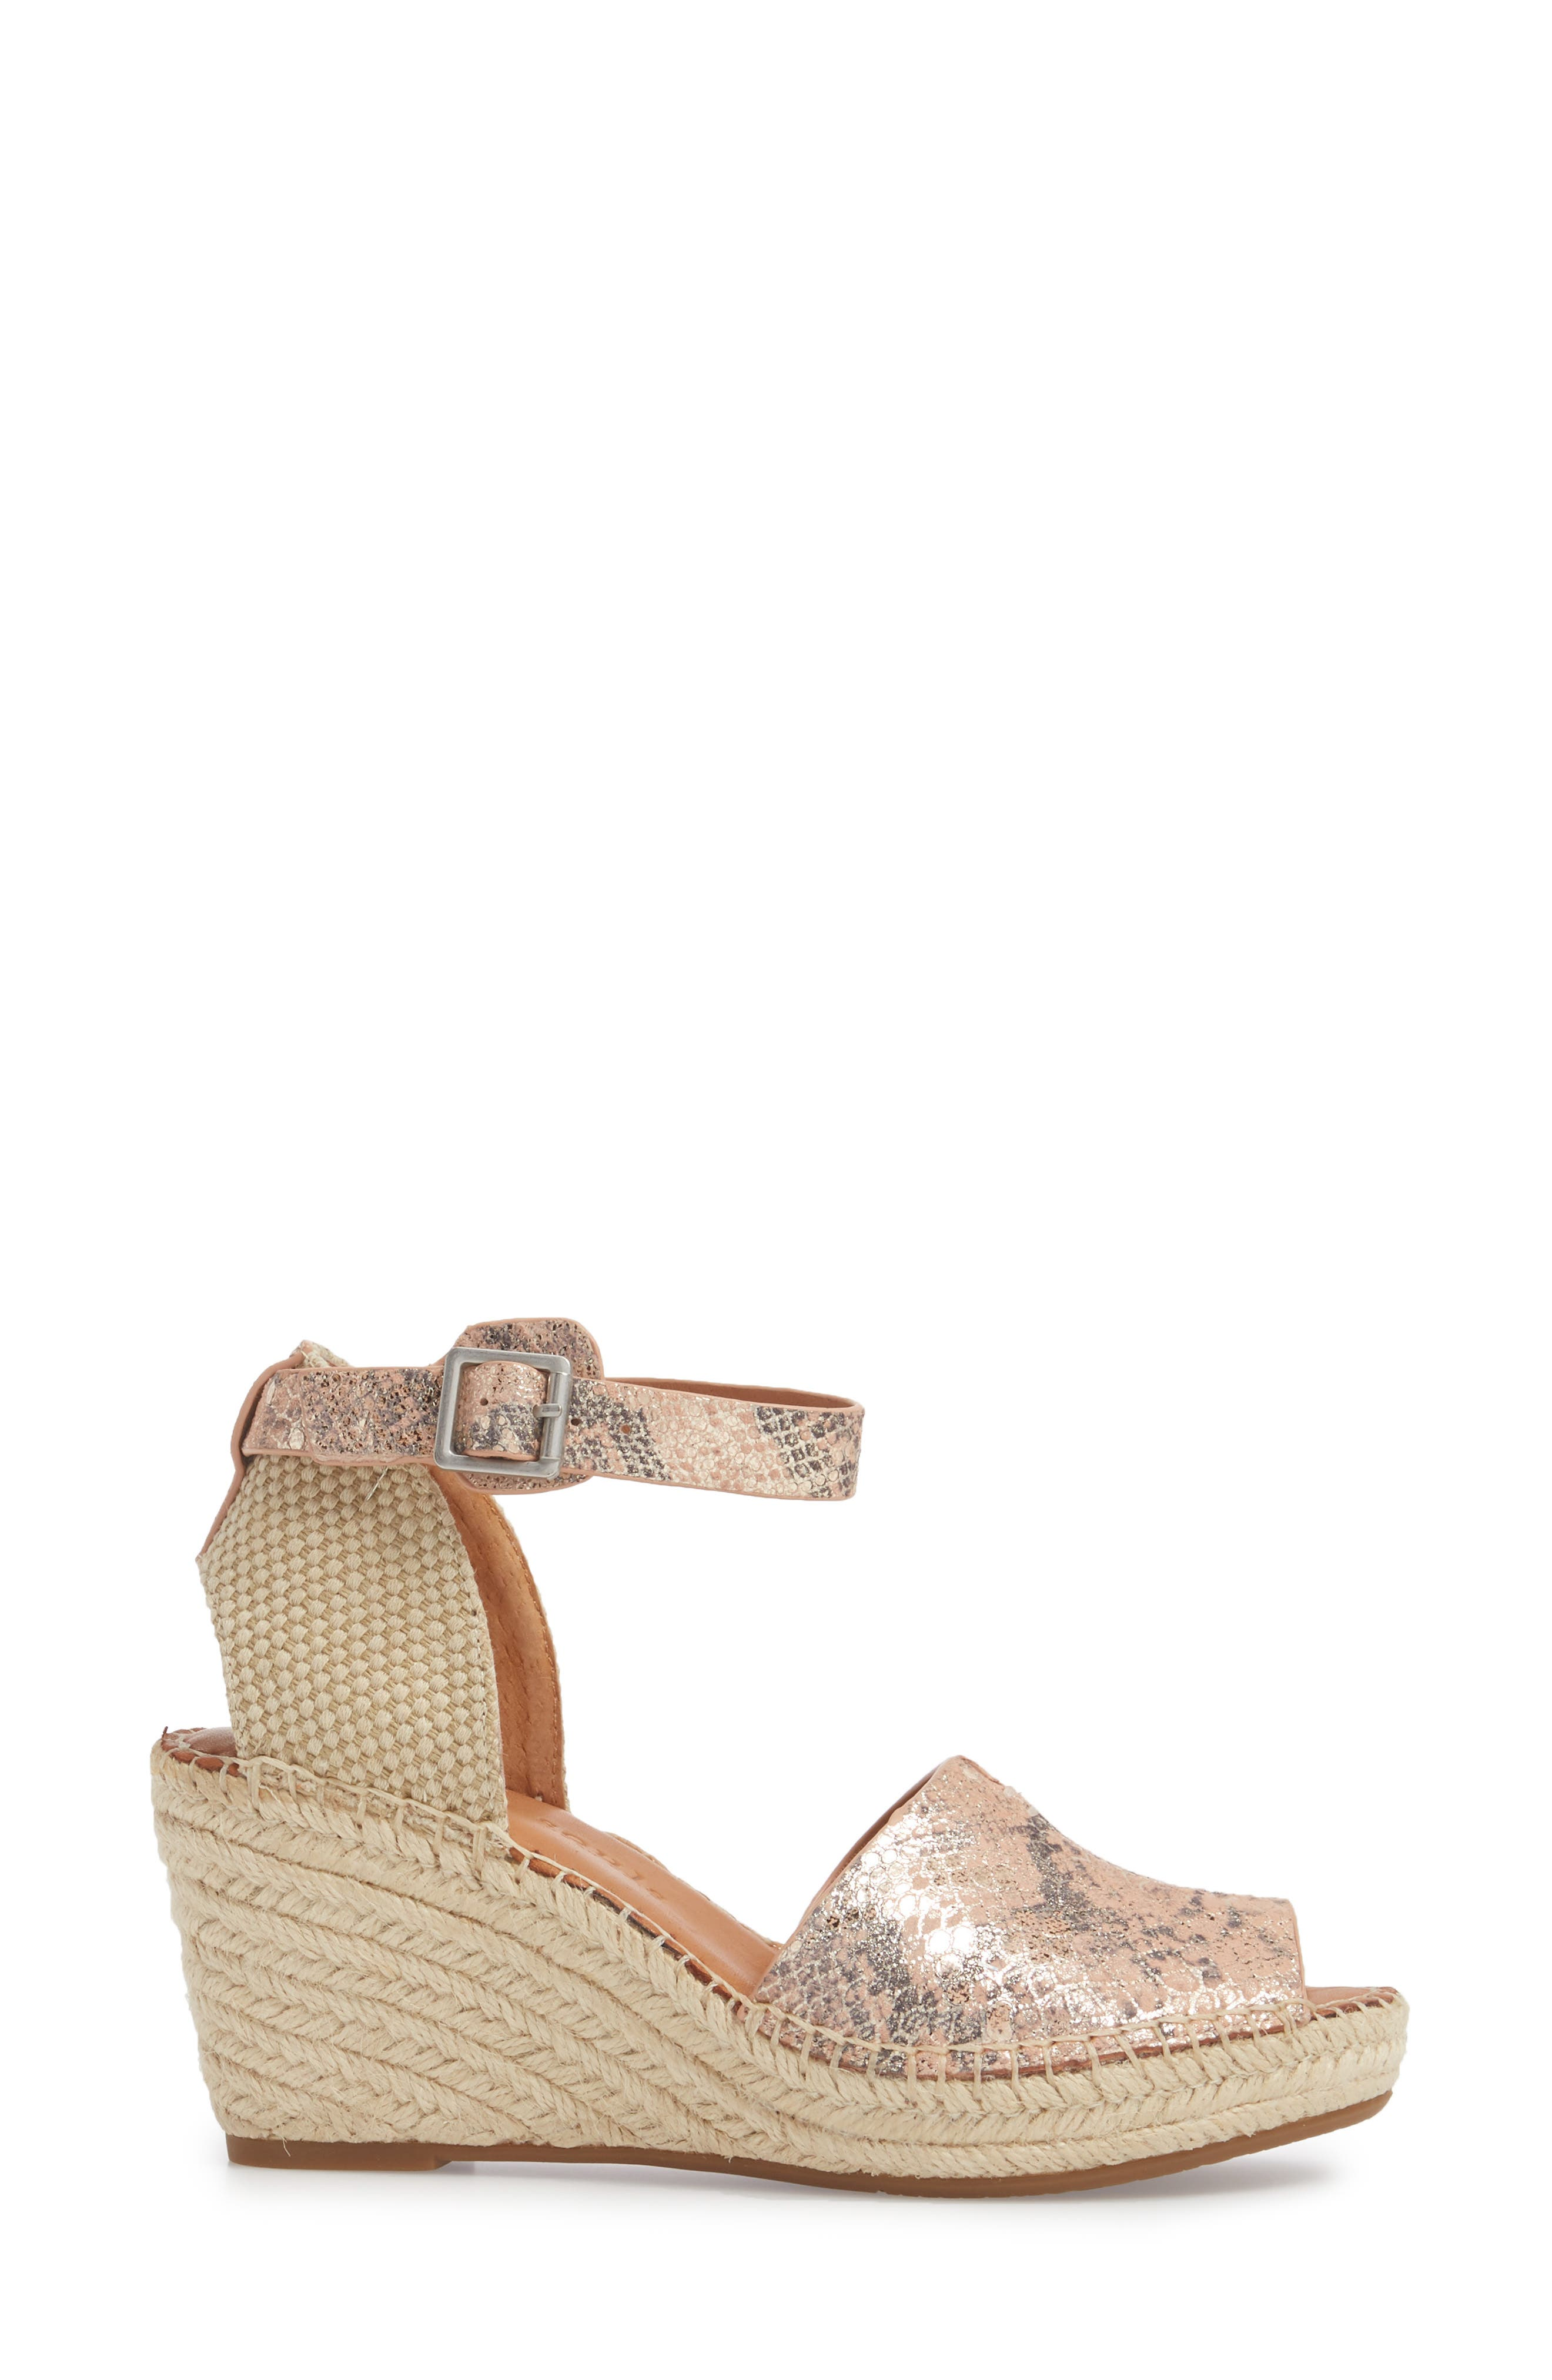 GENTLE SOULS BY KENNETH COLE, Charli Espadrille Wedge, Alternate thumbnail 3, color, ROSE METALLIC LEATHER